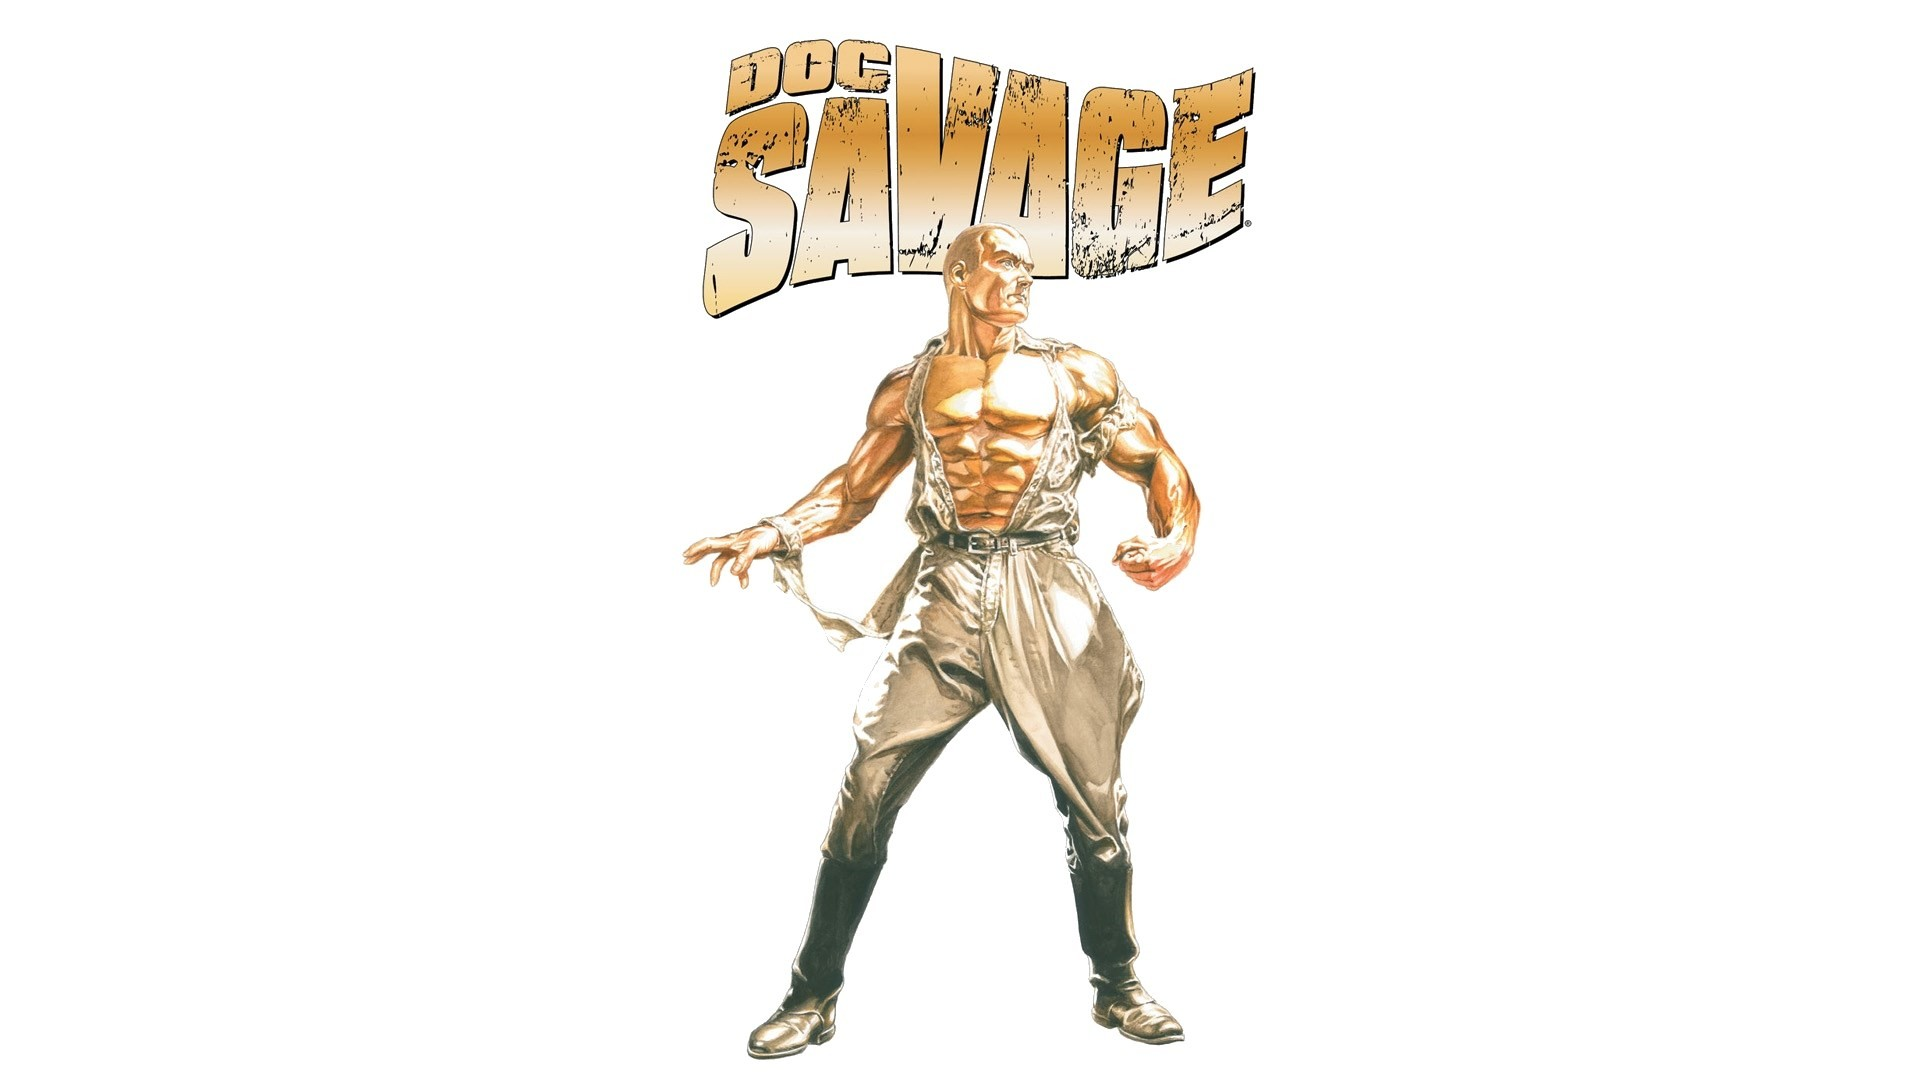 1920x1080  free computer wallpaper for doc savage